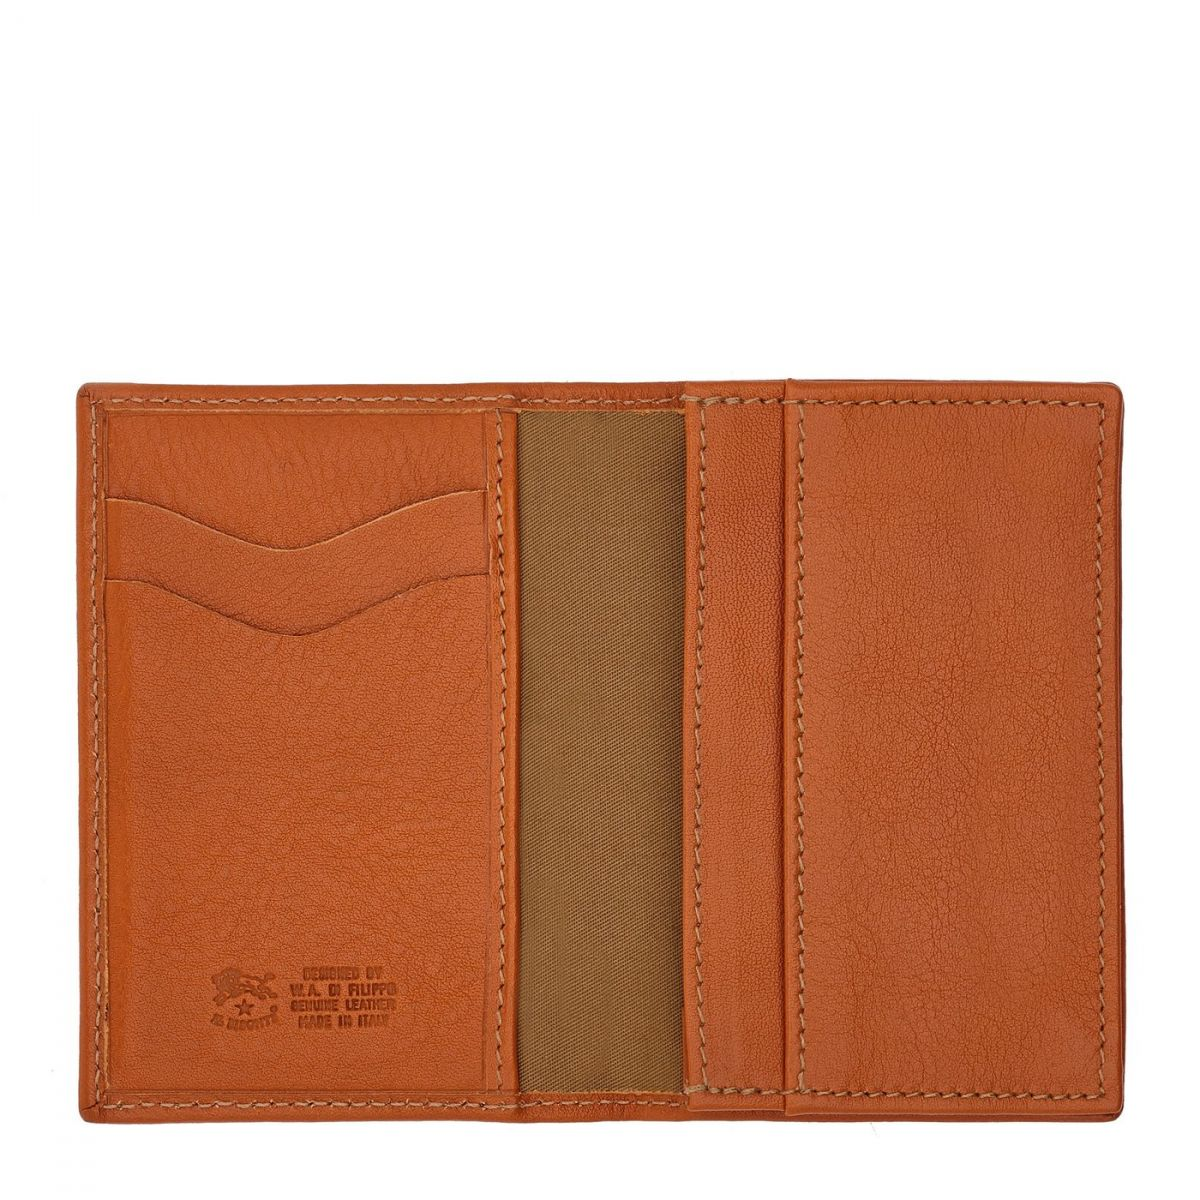 Card Case  in Cowhide Double Leather SCC036 color Caramel | Details